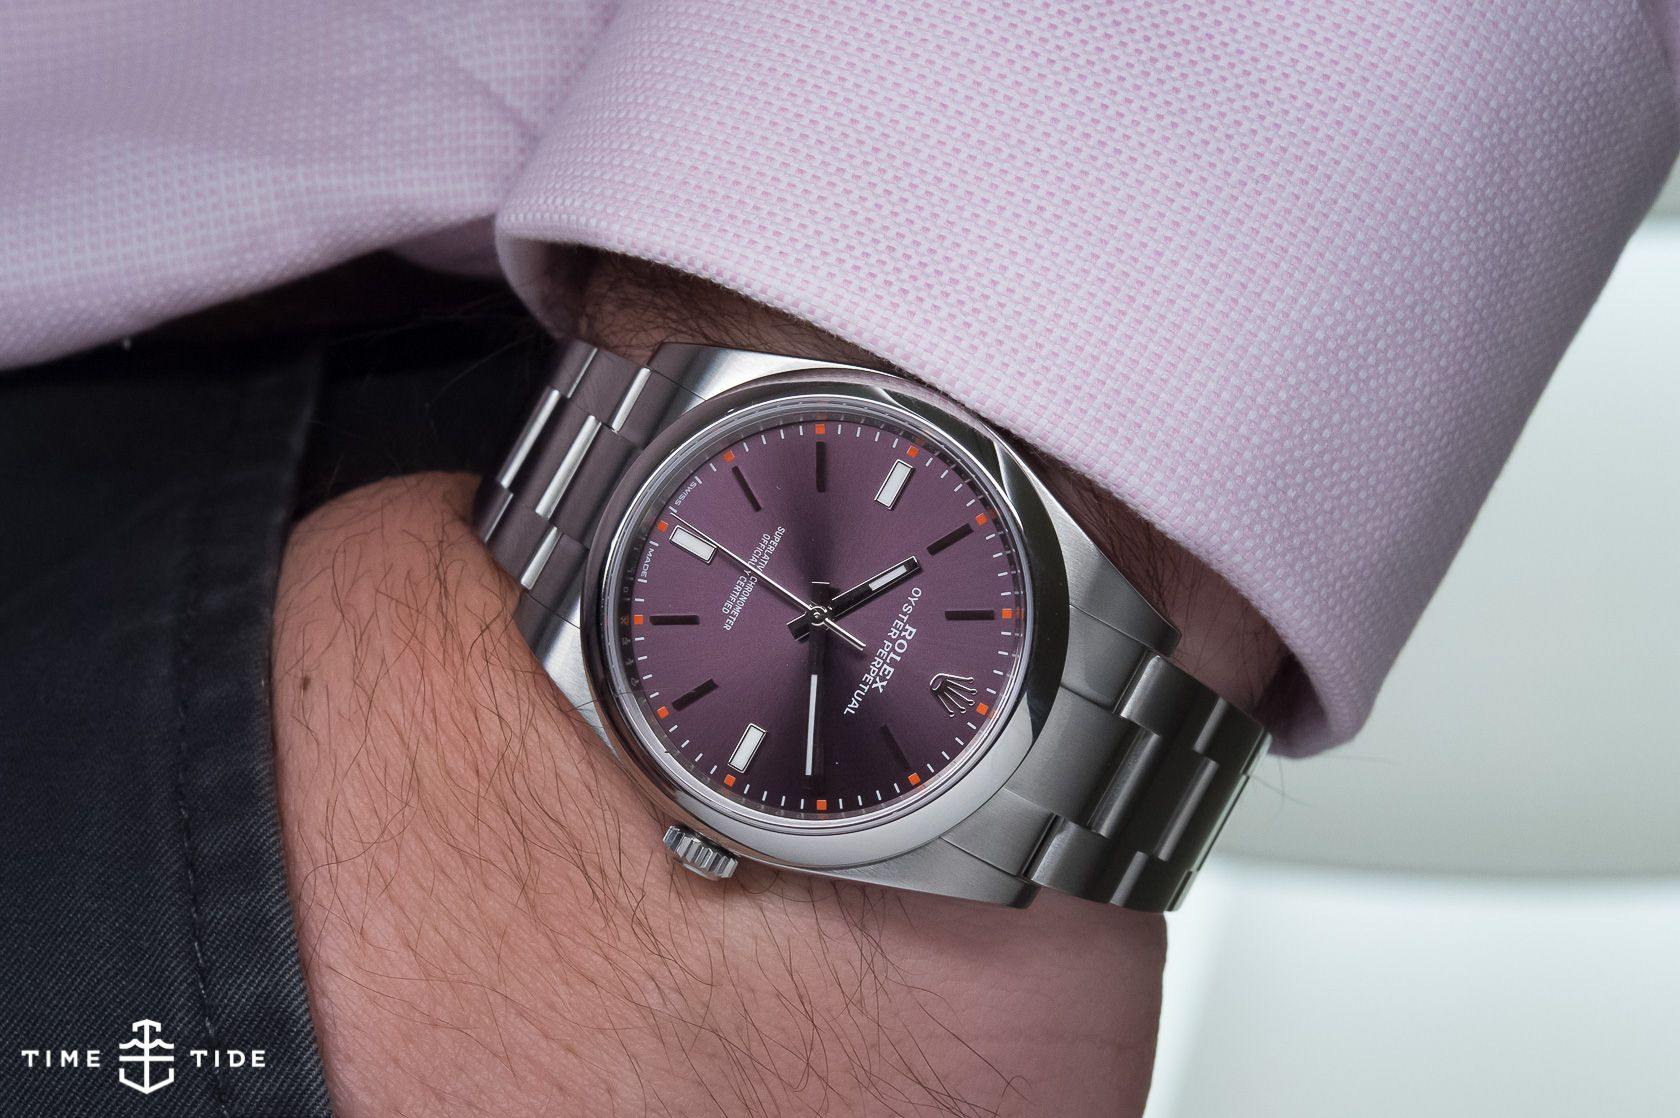 ece170f2c774d We take a look at the Rolex Oyster Perpetual 39 and decide it s probably  the only watch you ll ever need.